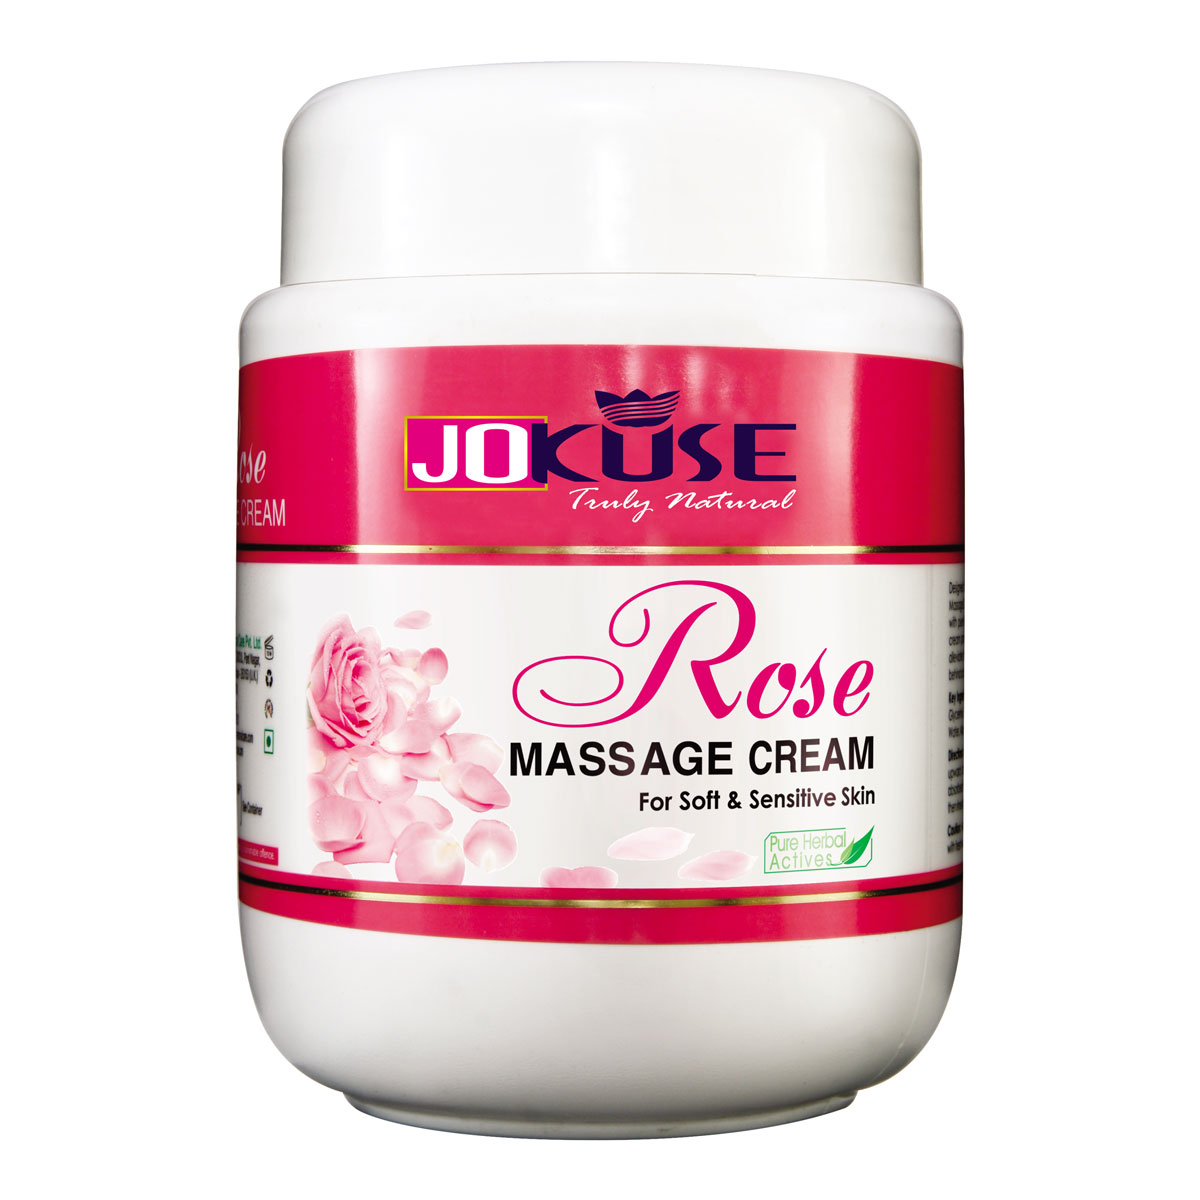 ROSE MASSAGE CREAM